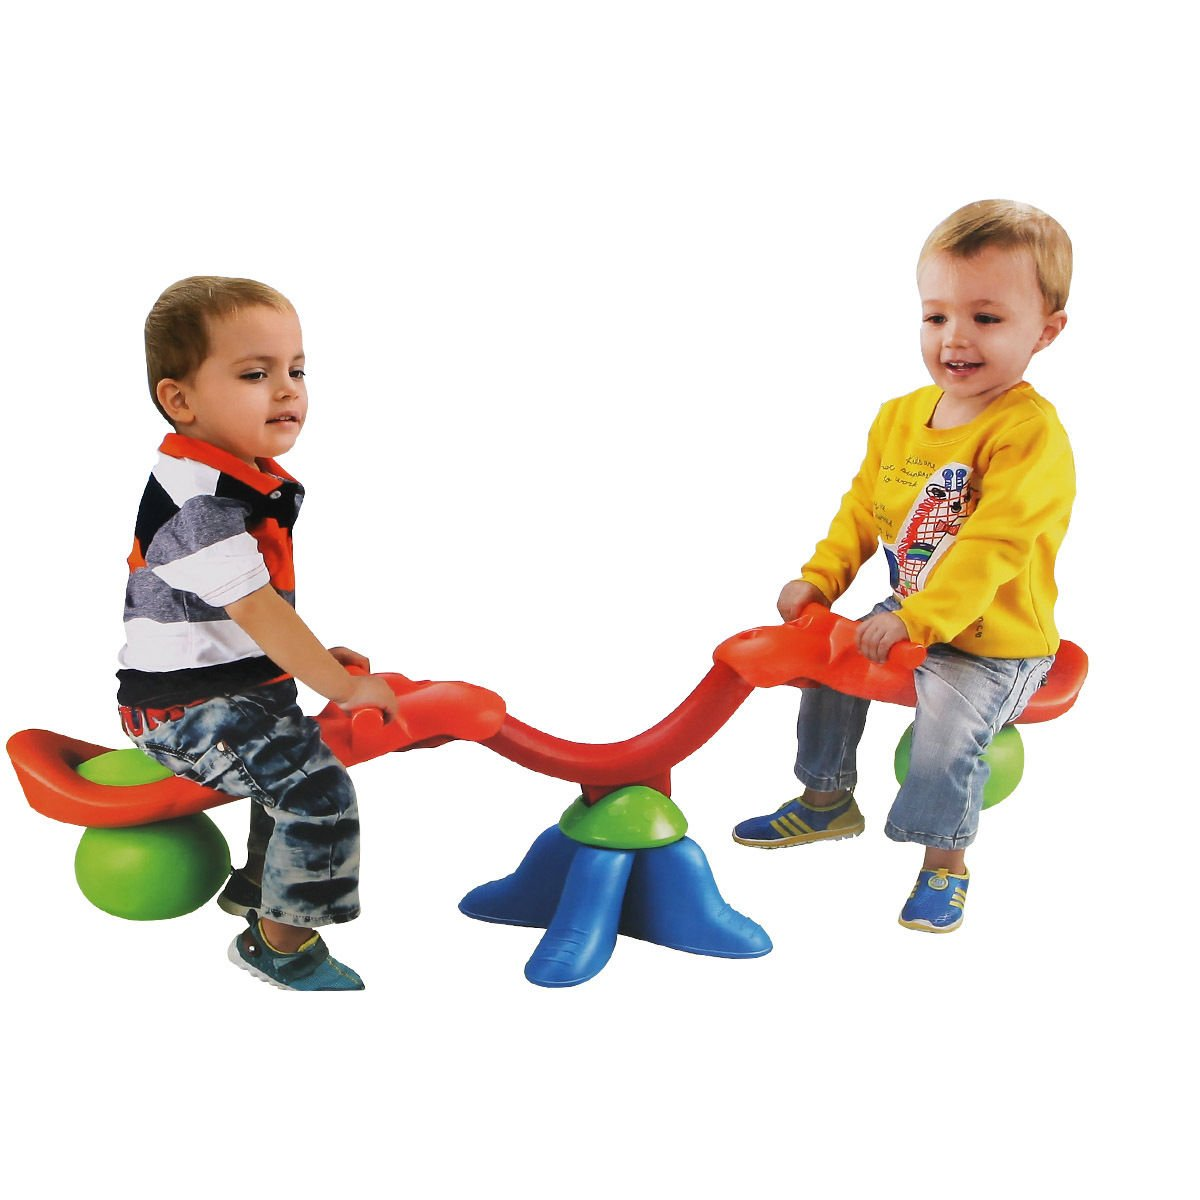 Globe House Products GHP Kids Toddlers 360-Degree Rotation Easy-Grip Seesaw Spinning Teeter Totter Bouncer by Globe House Products (Image #2)